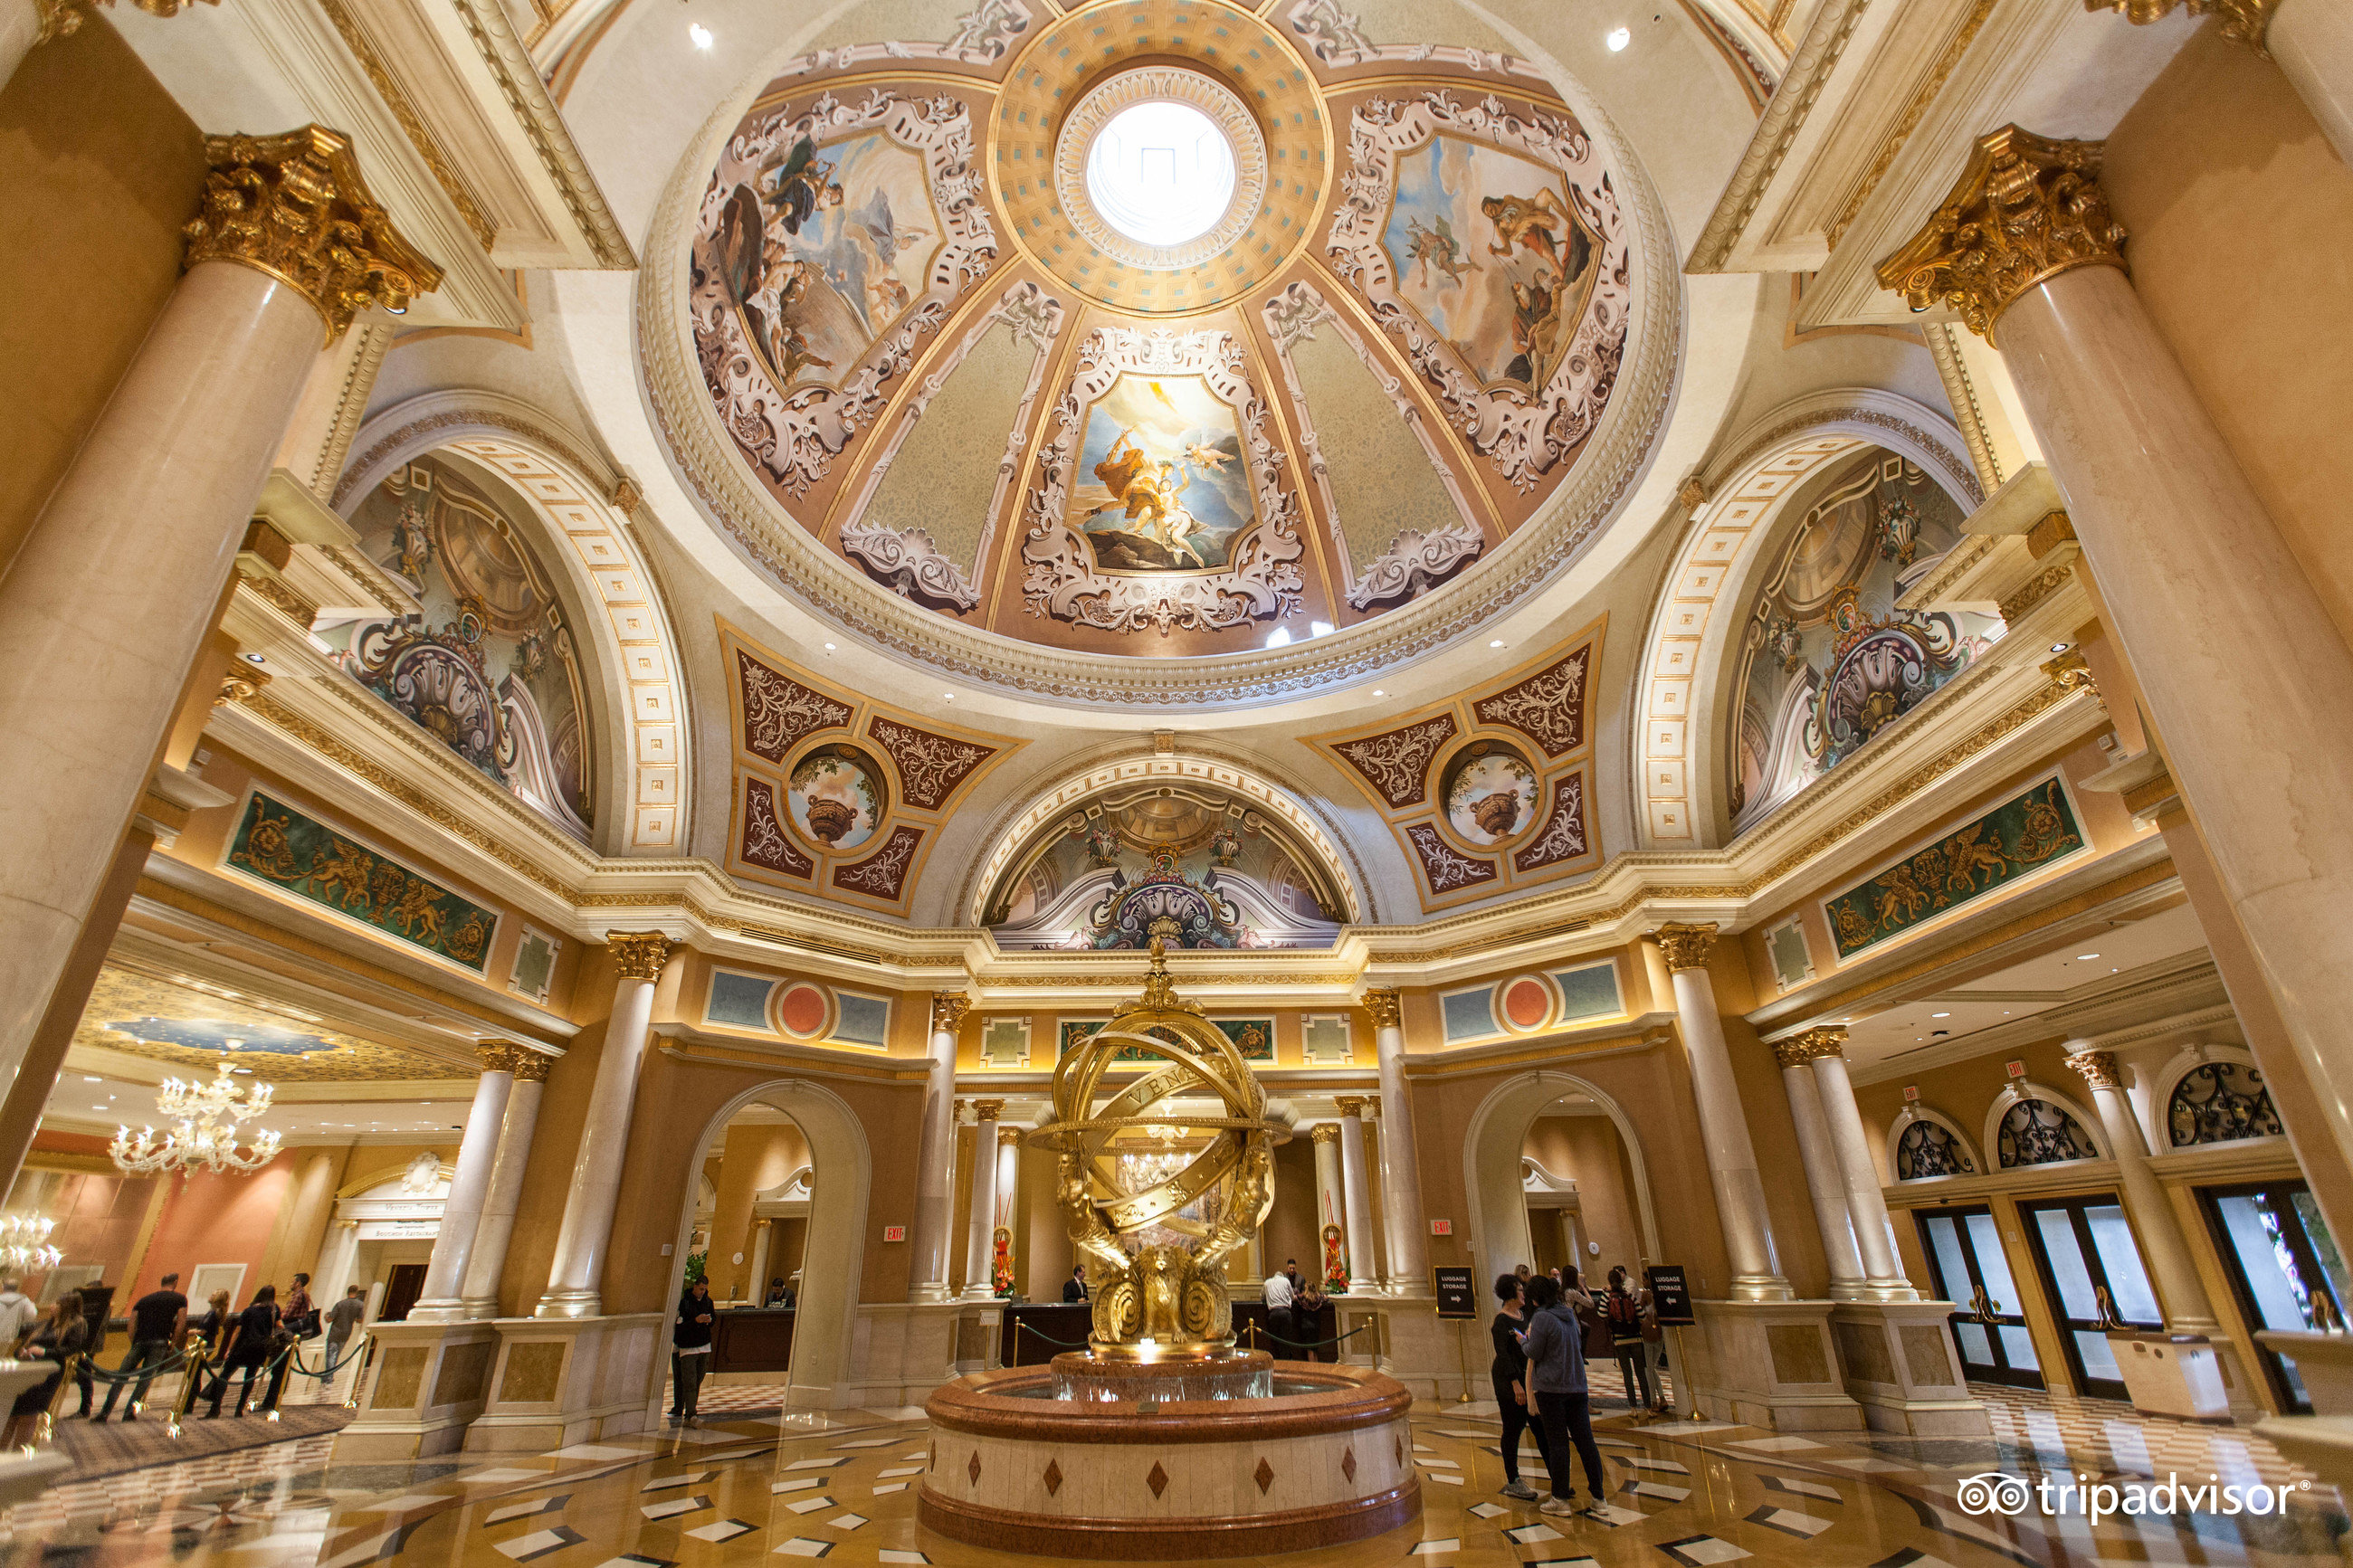 Venetian Resort Hotel Casino Las Vegas NV 2018 Review & Ratings